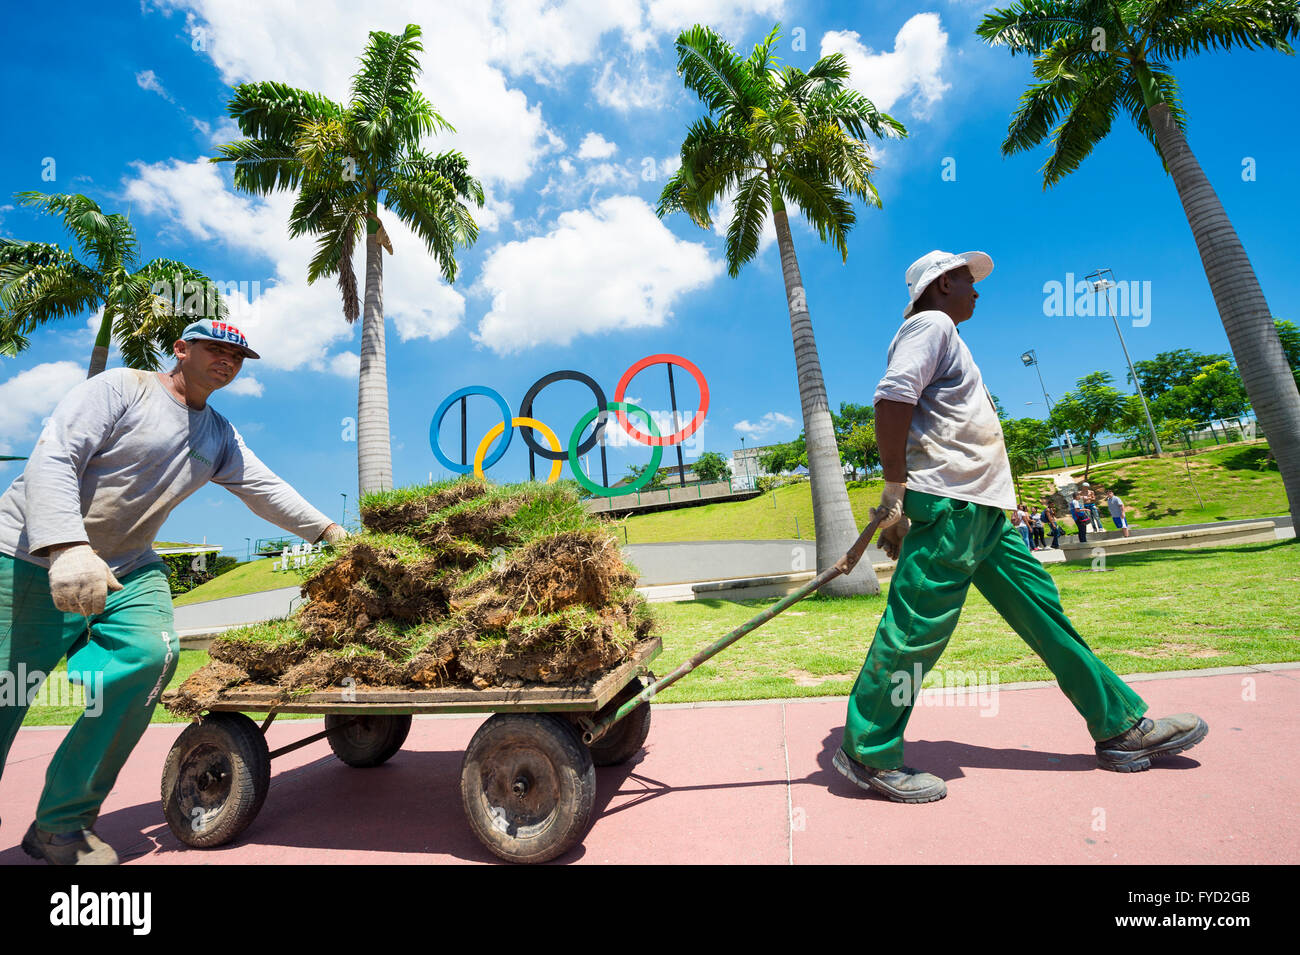 RIO DE JANEIRO - MARCH 18, 2016: Maintenance workers transport landscaping materials in front of Olympic Rings. - Stock Image